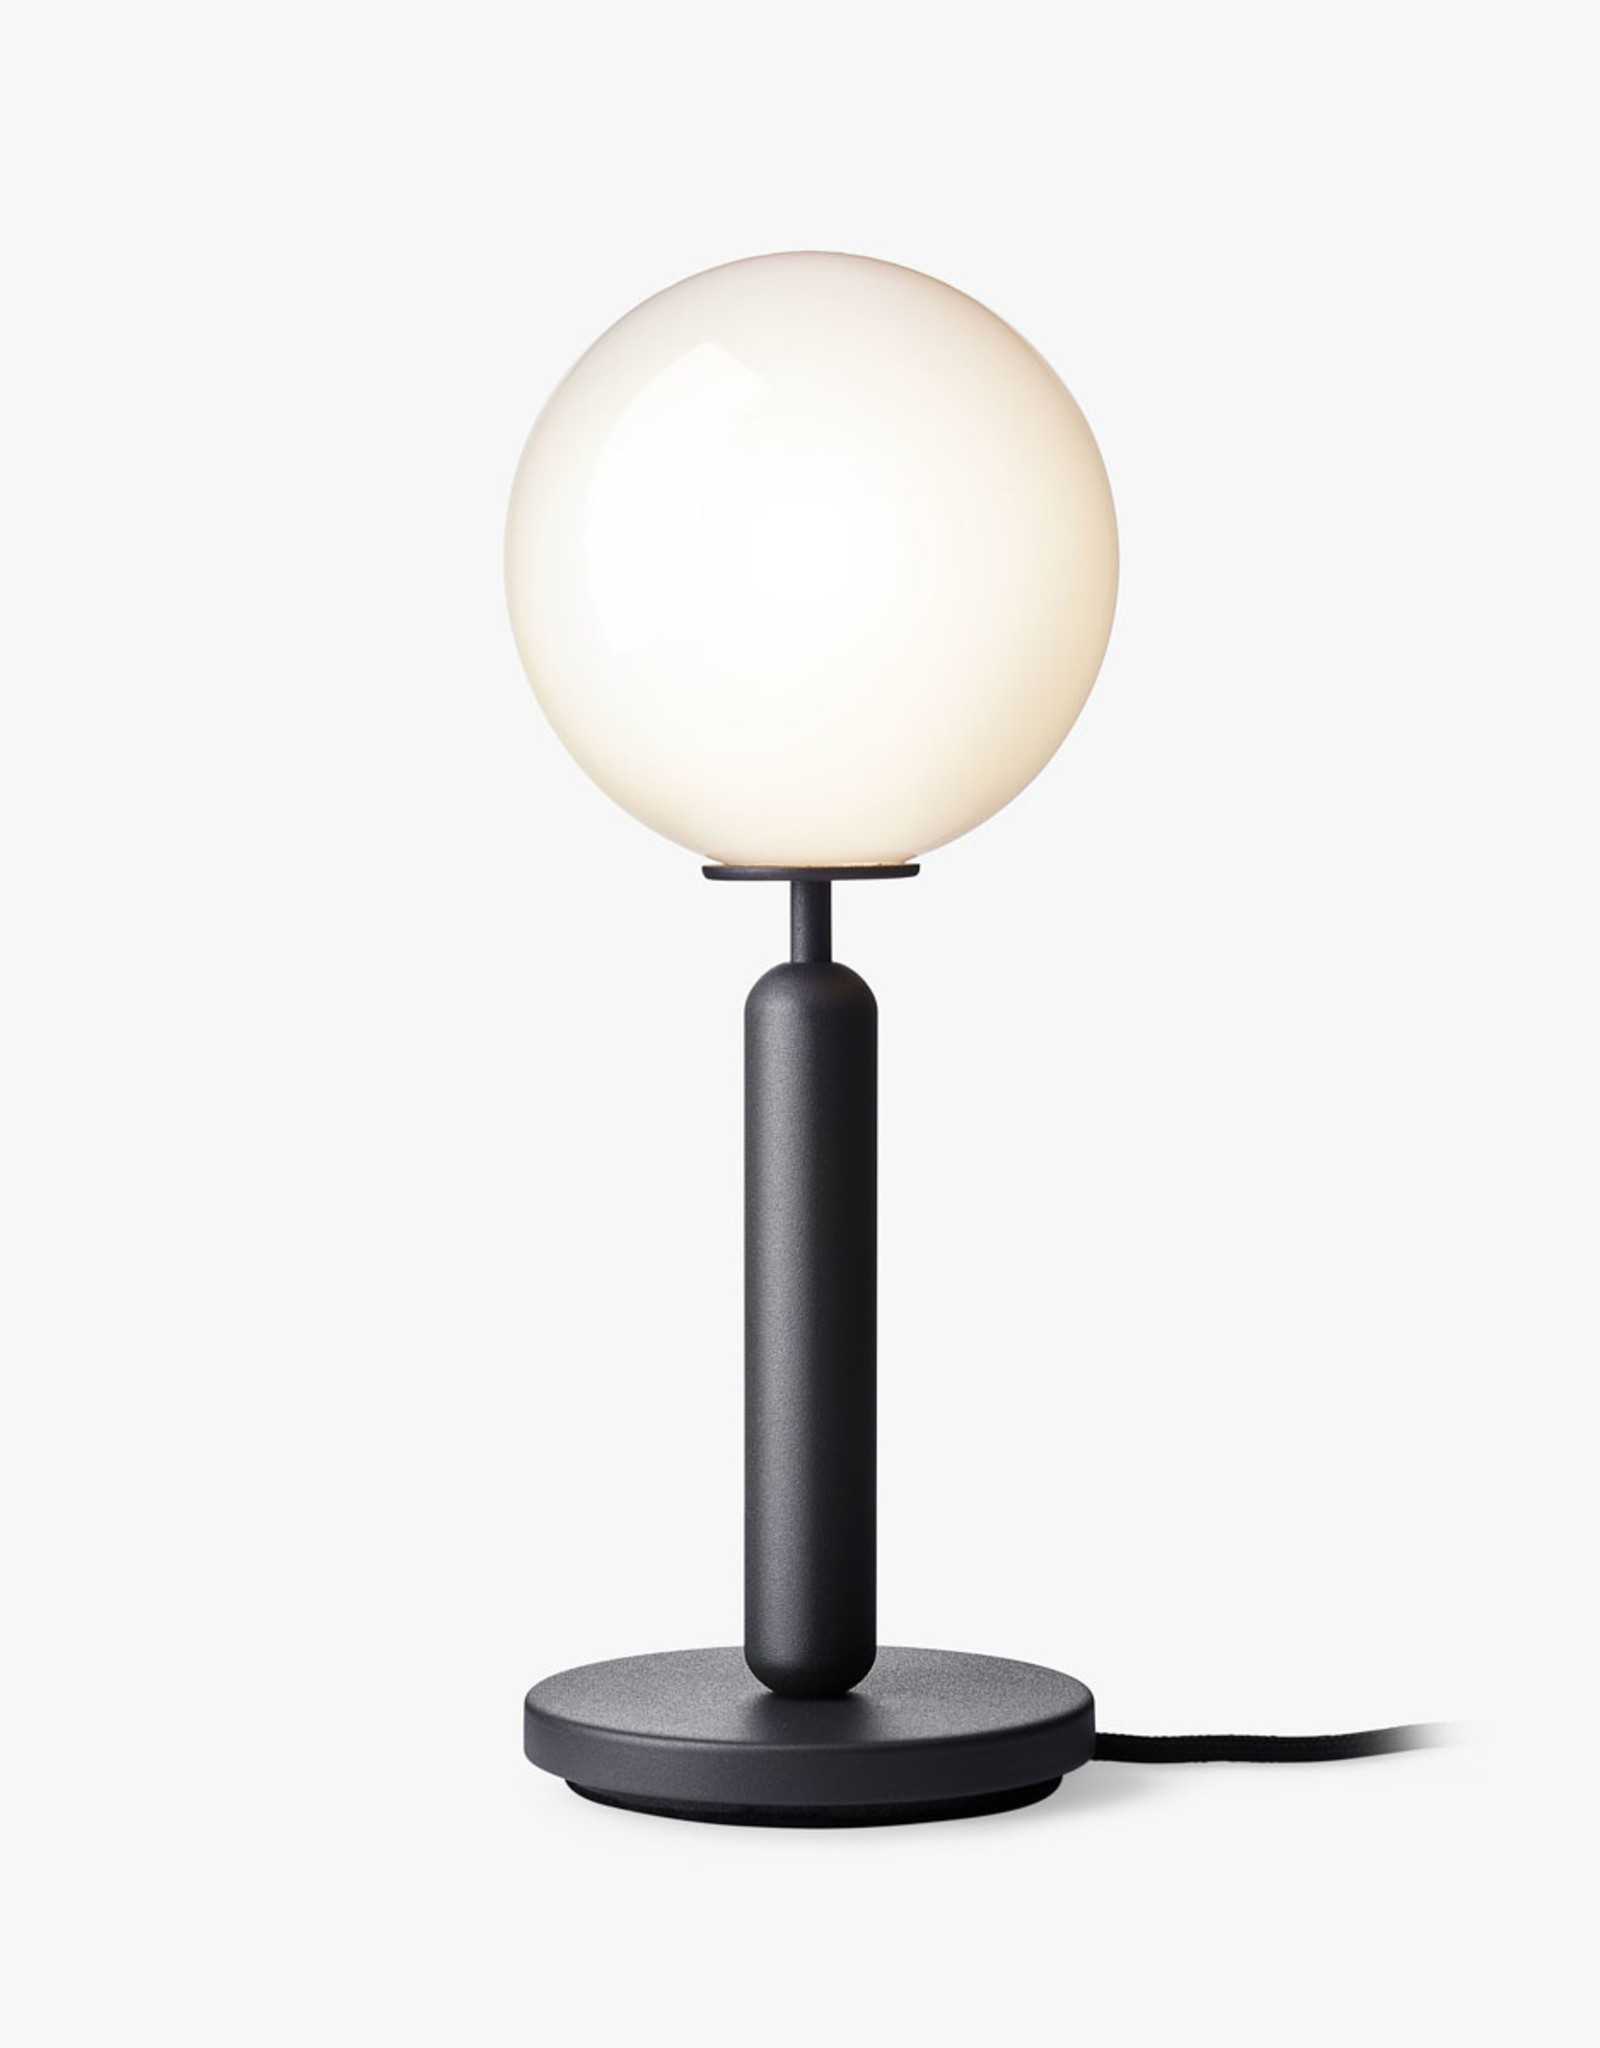 Nuura Miira table light by Sofie Refer | Rock grey/opal white